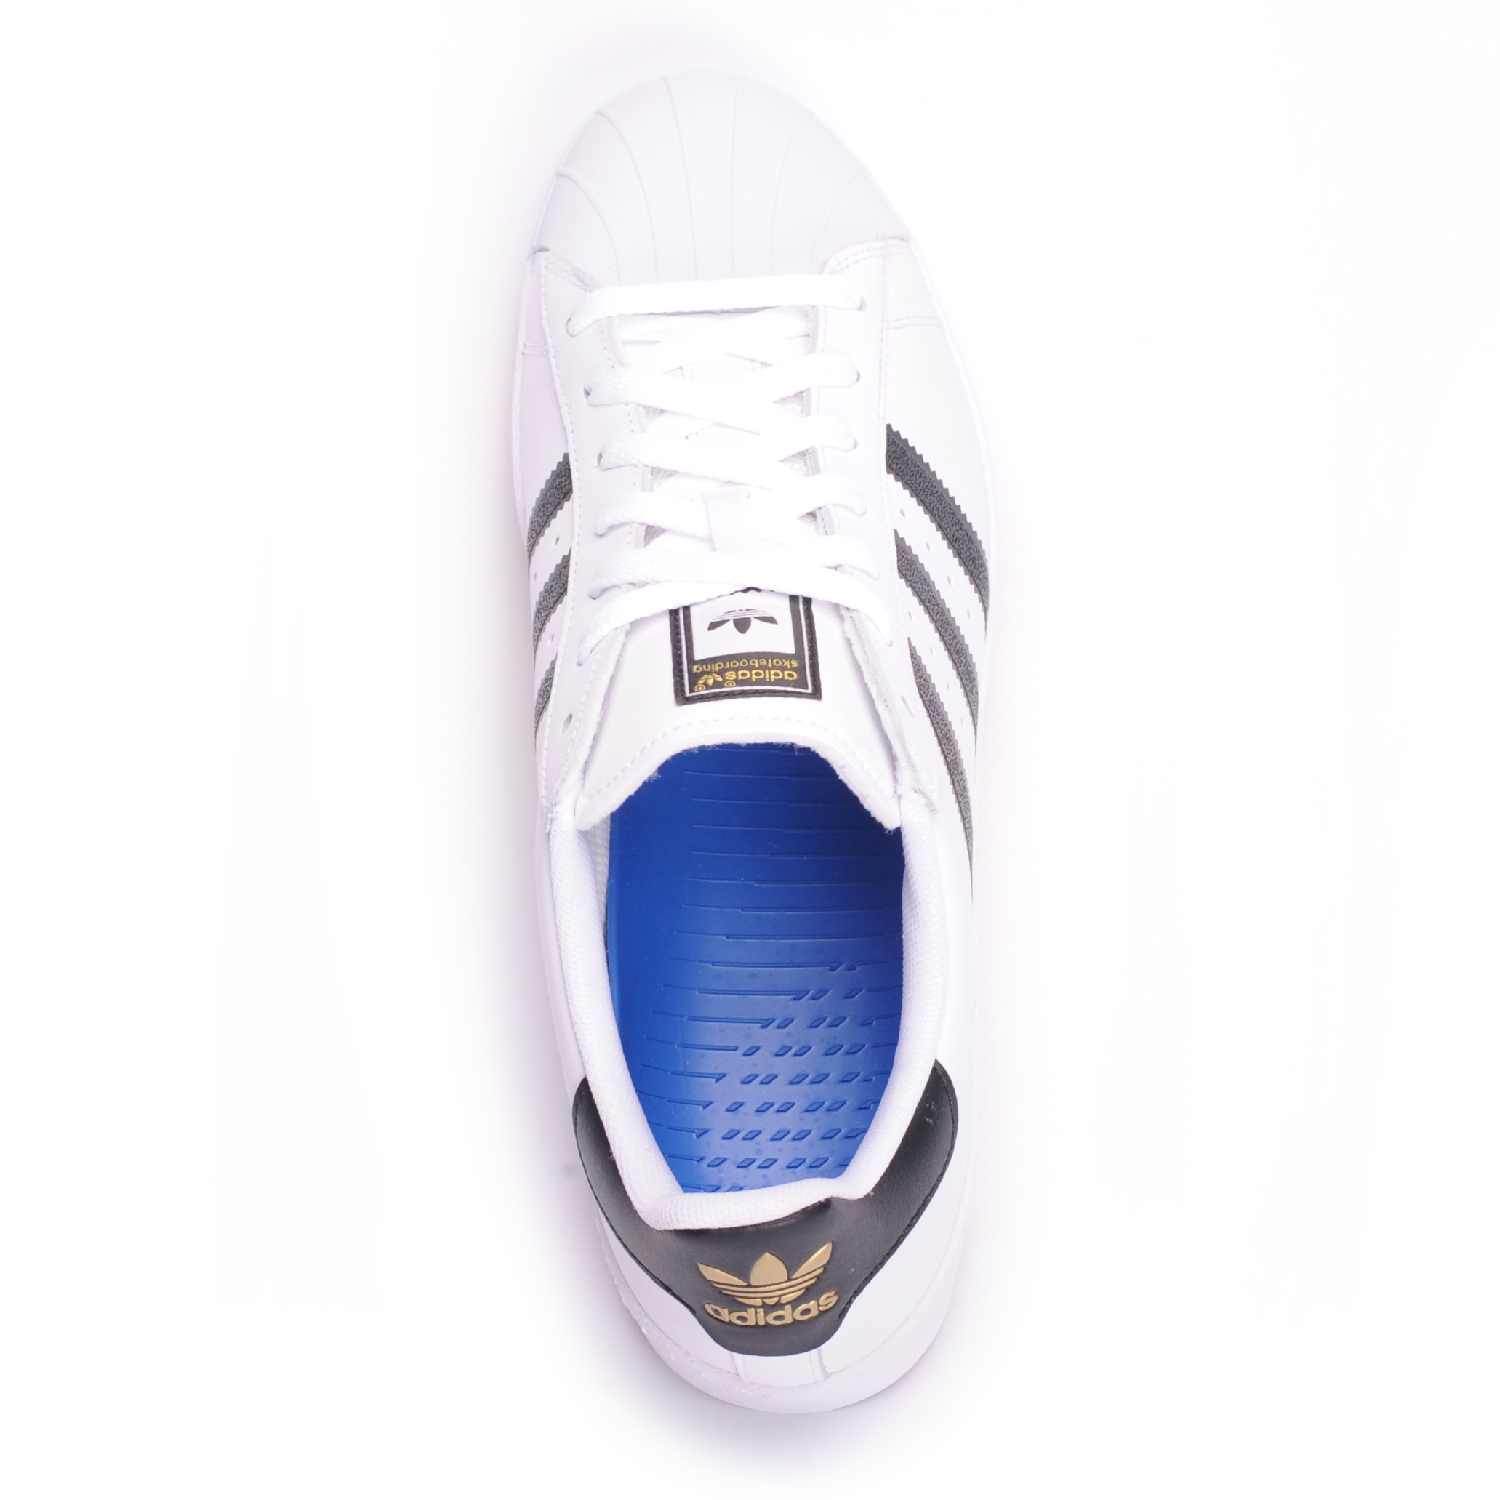 Cheap Adidas Superstar Vulc ADV Shoes White Cheap Adidas Australia